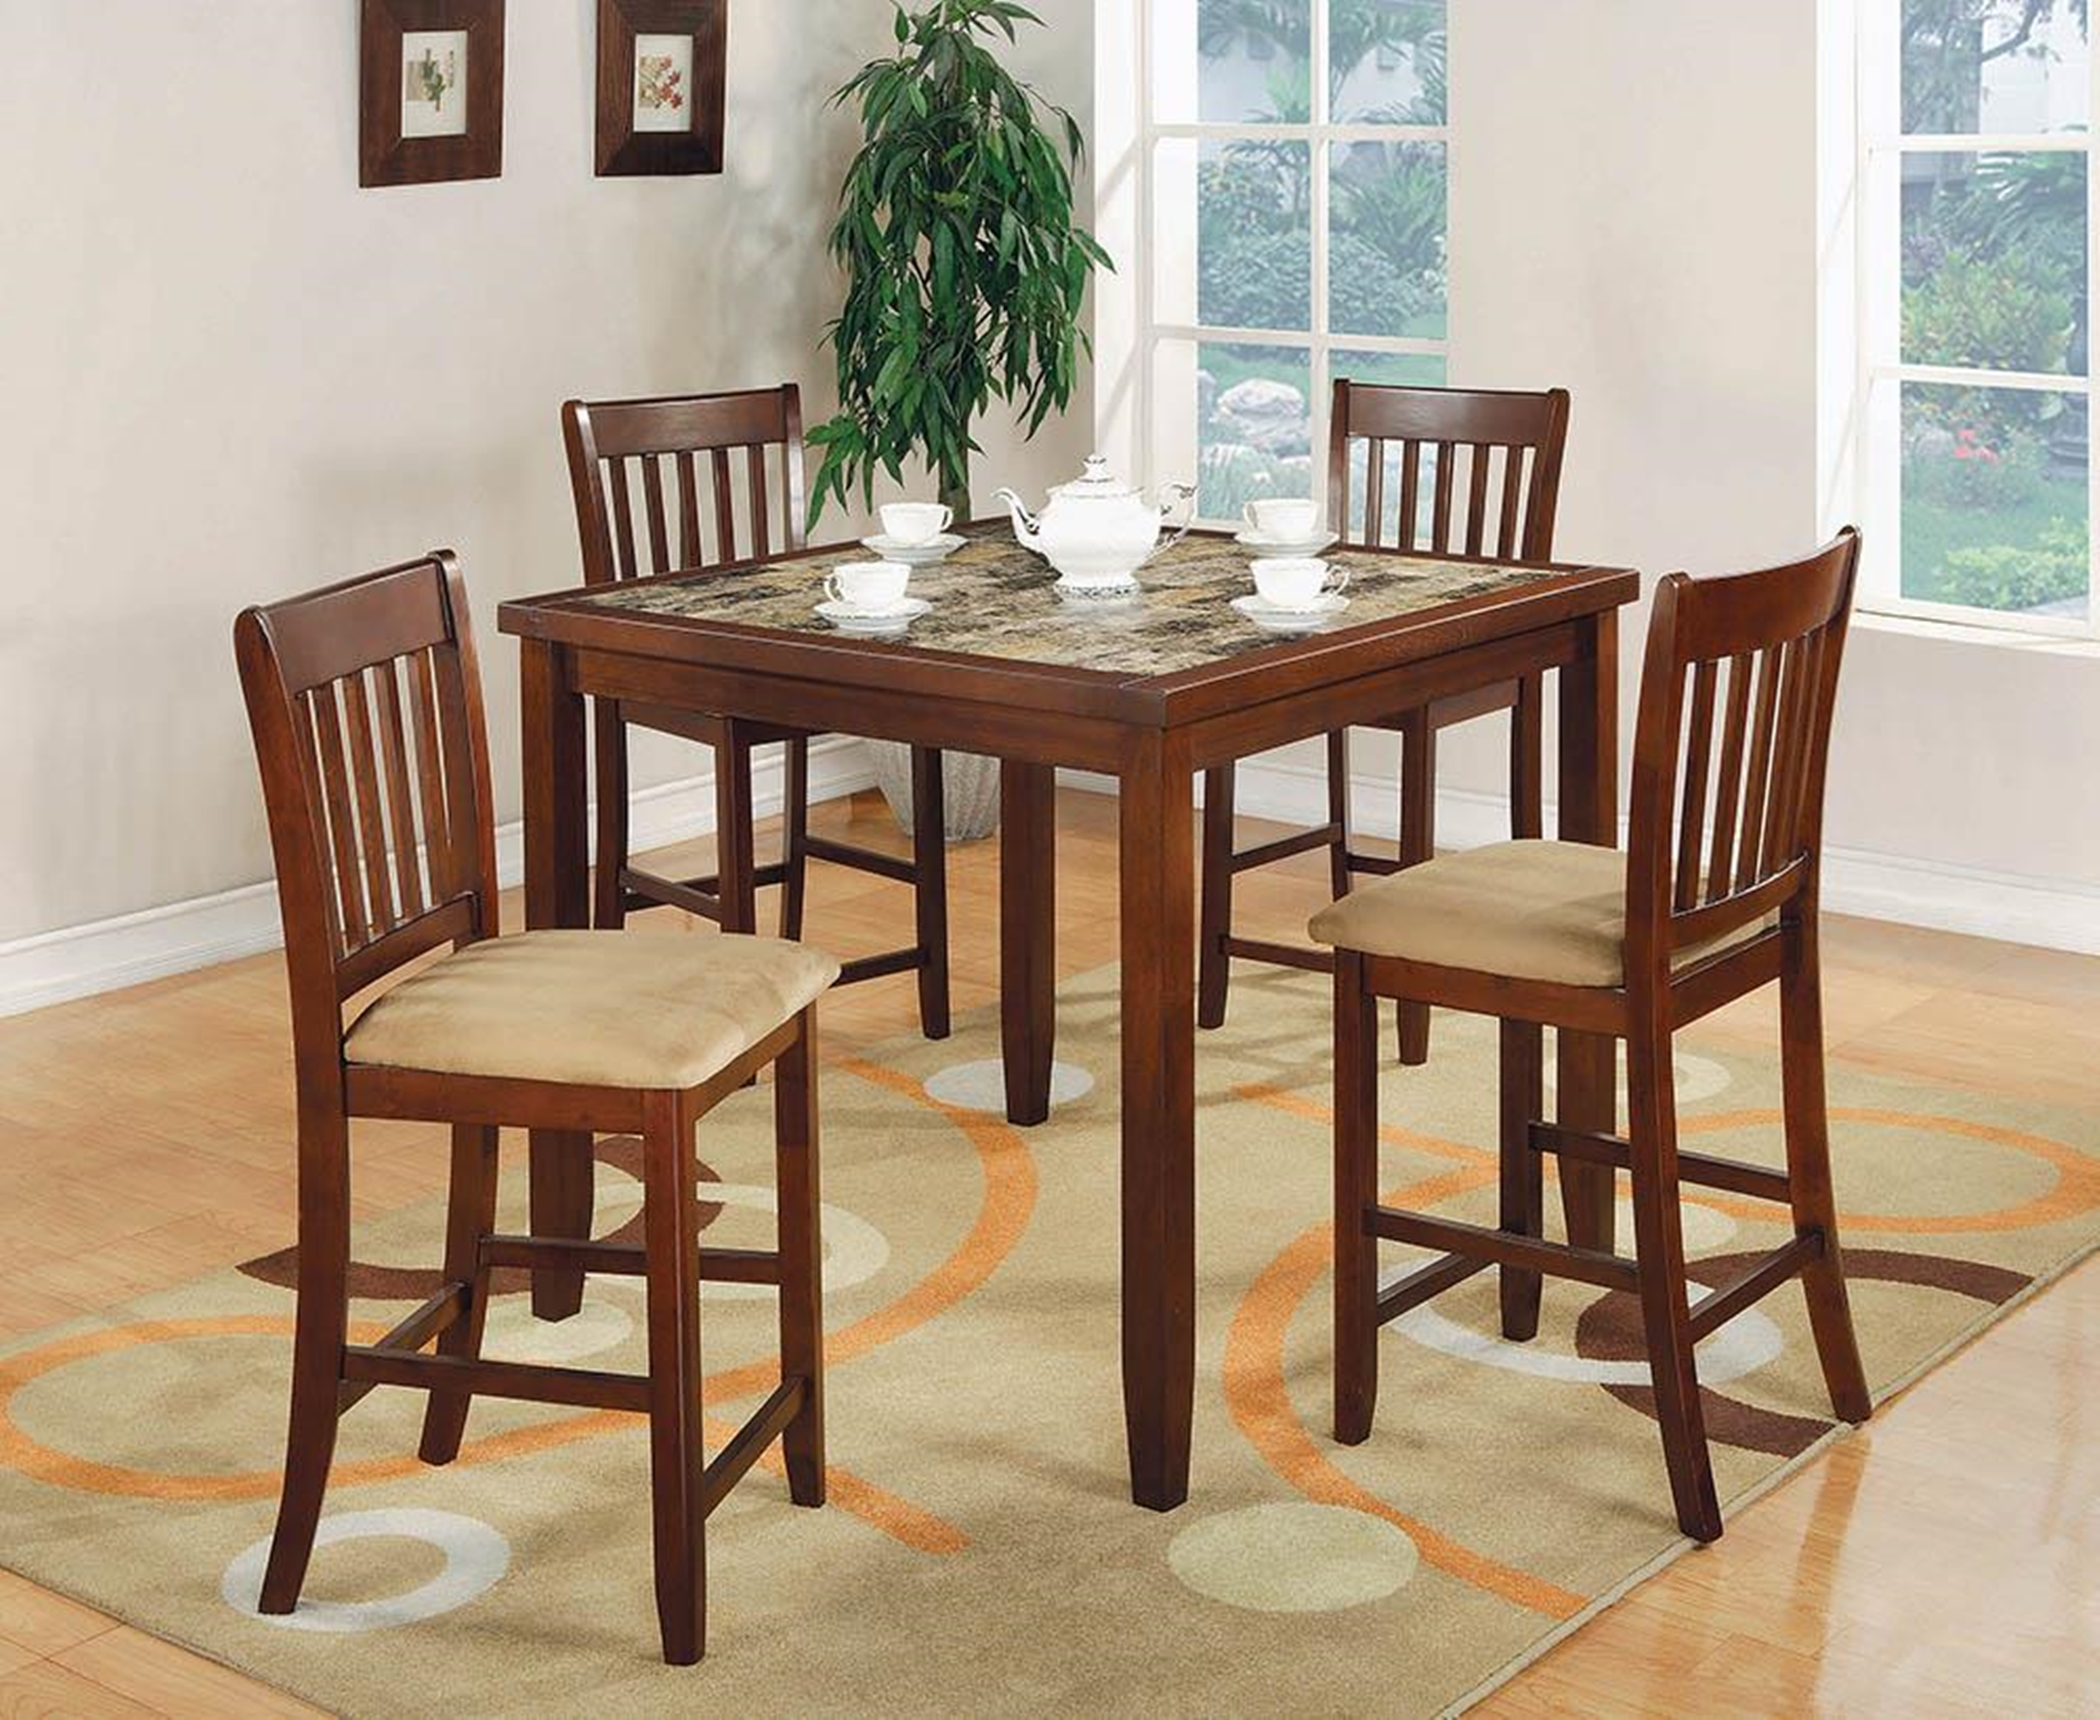 5-Pc. Casual Cherry Counter-Height Dining Set